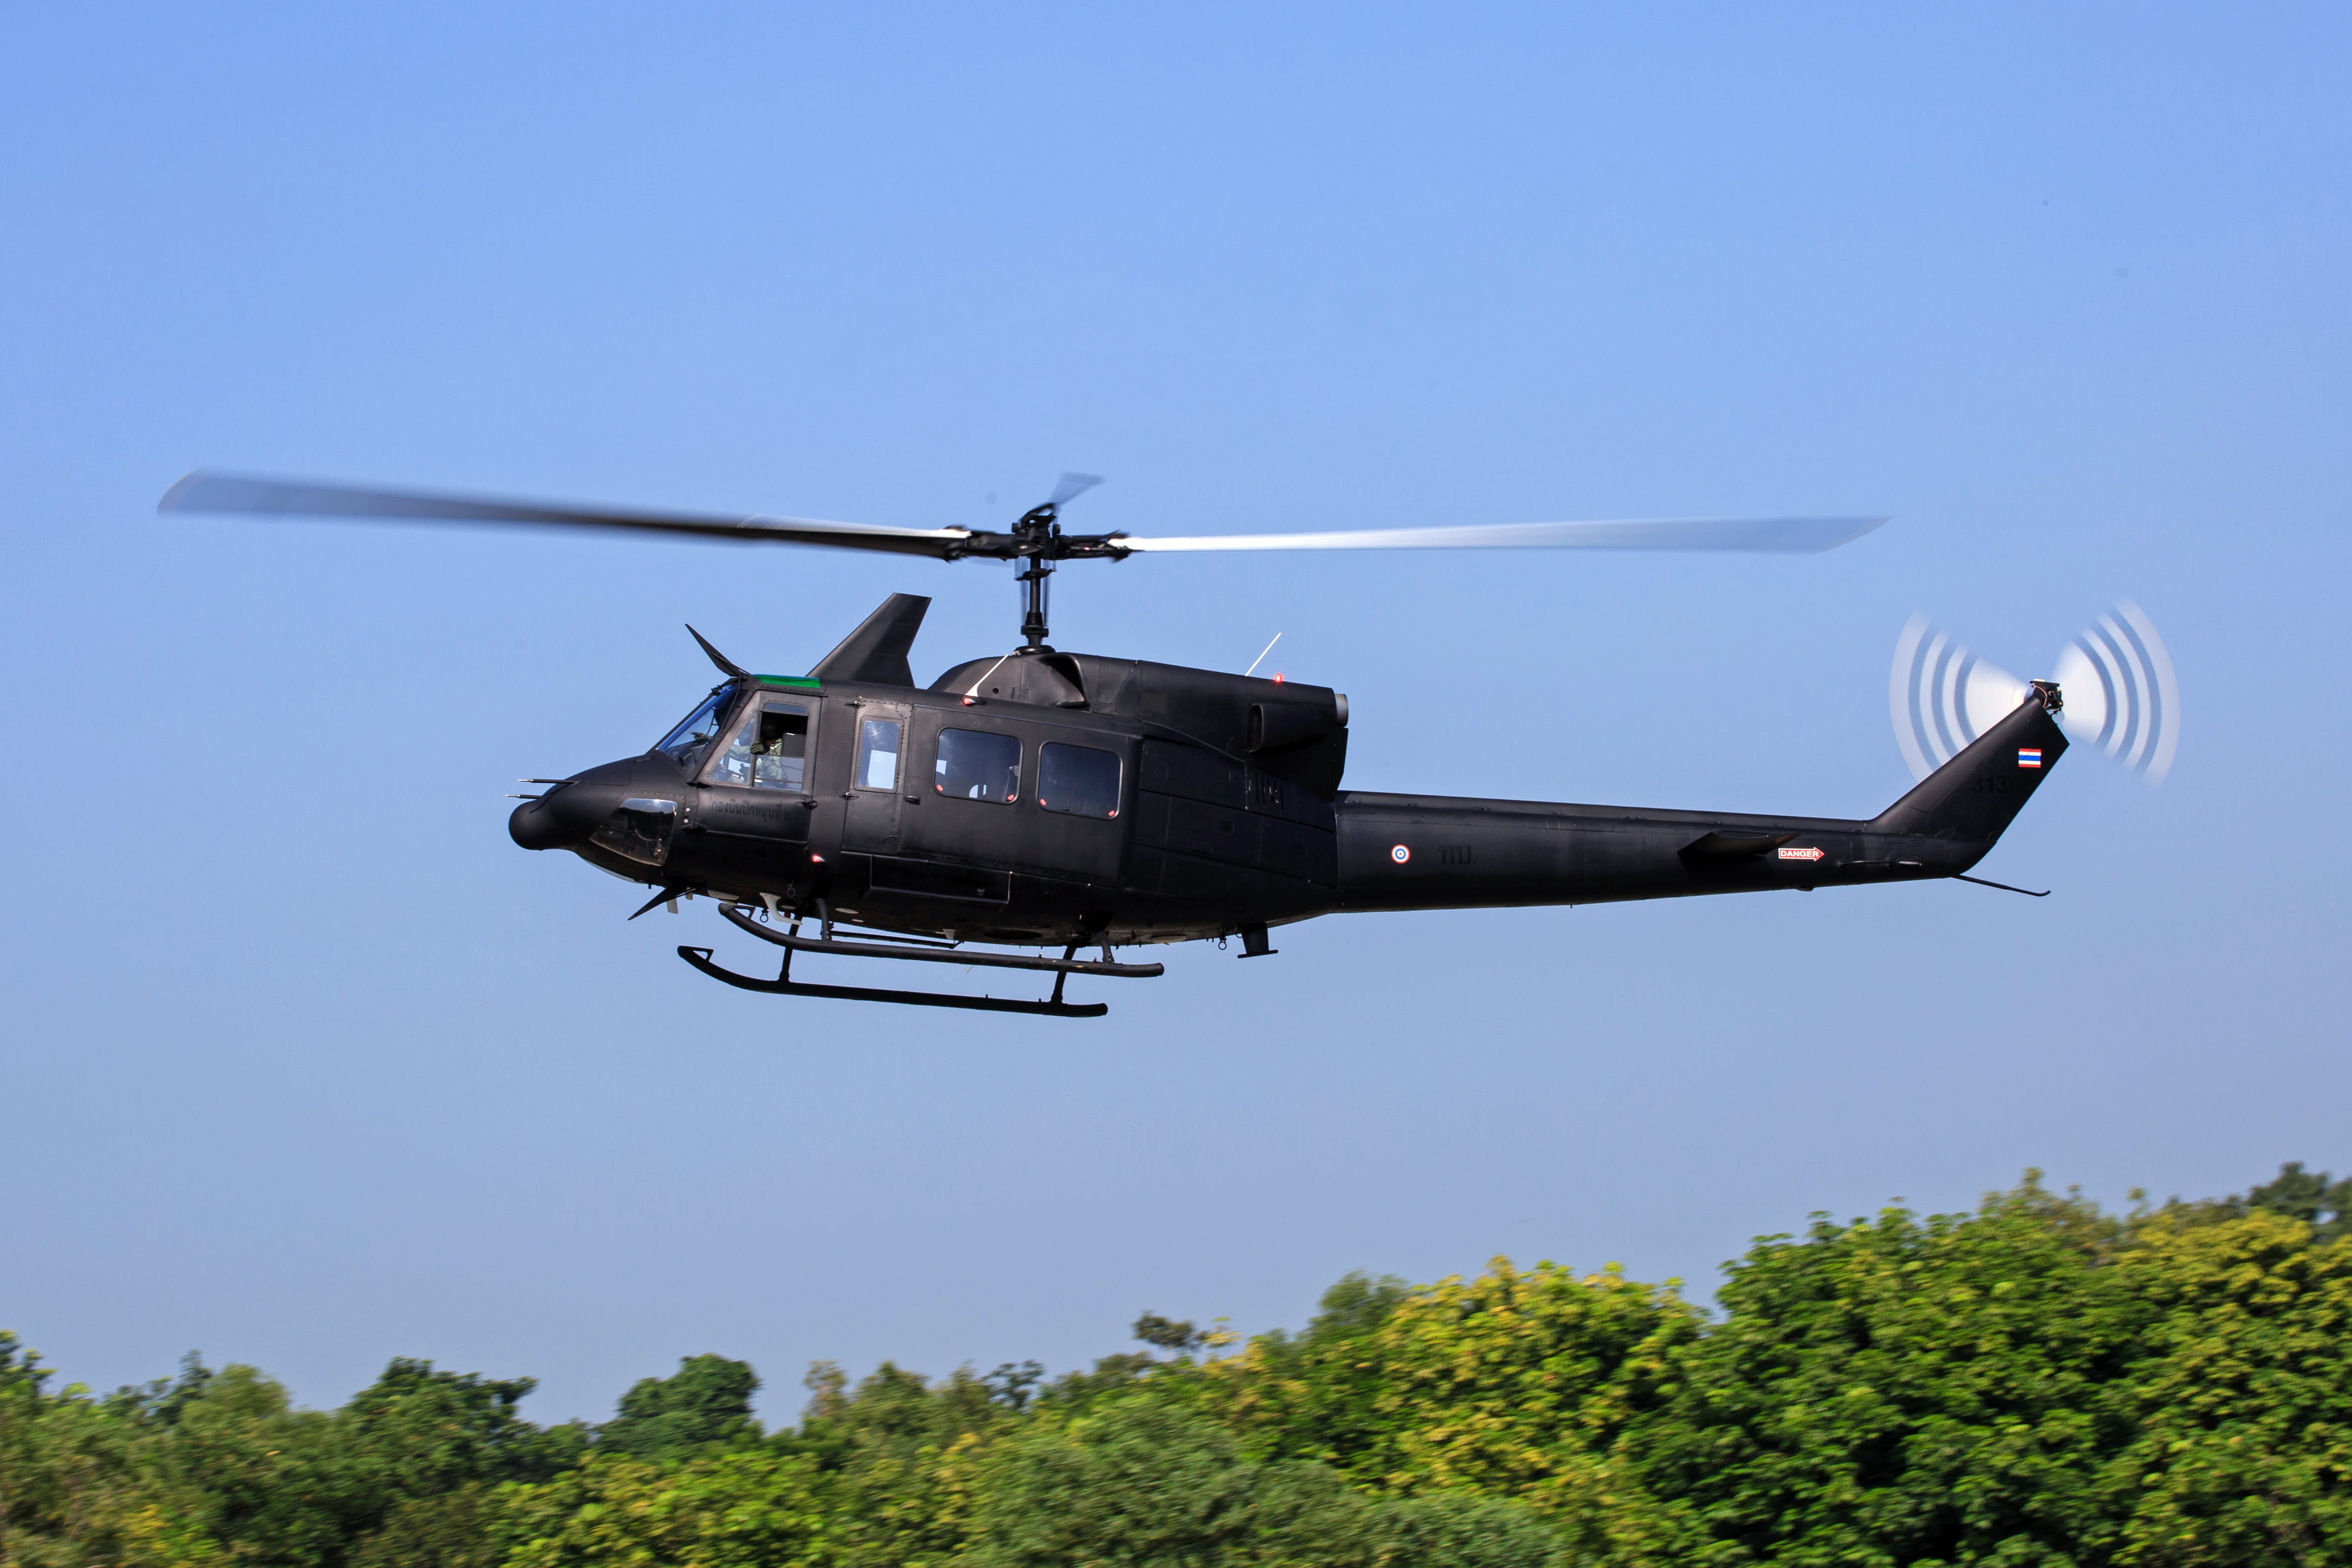 Black Helicopter Flying Above Green Trees